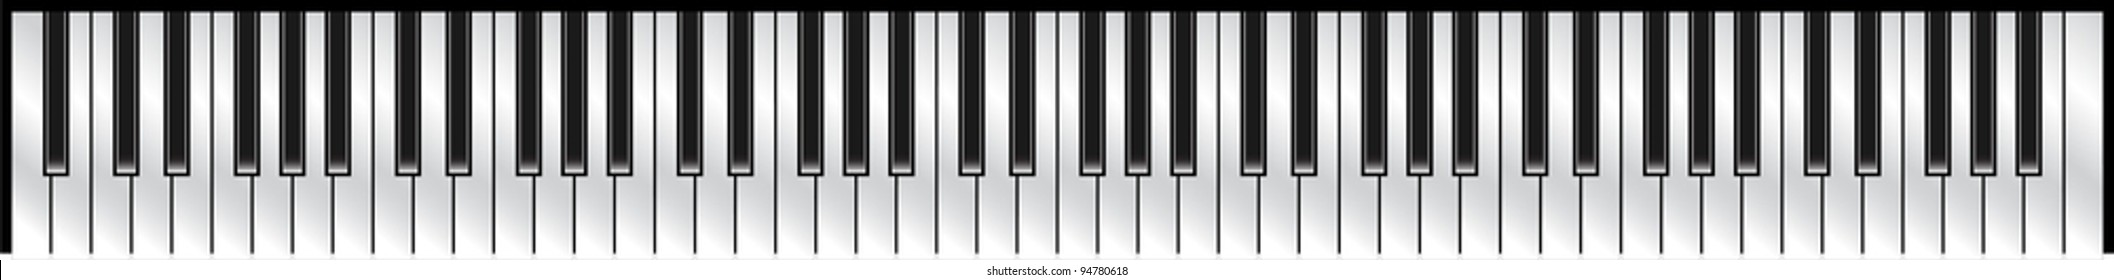 piano keyboard standard 88 key